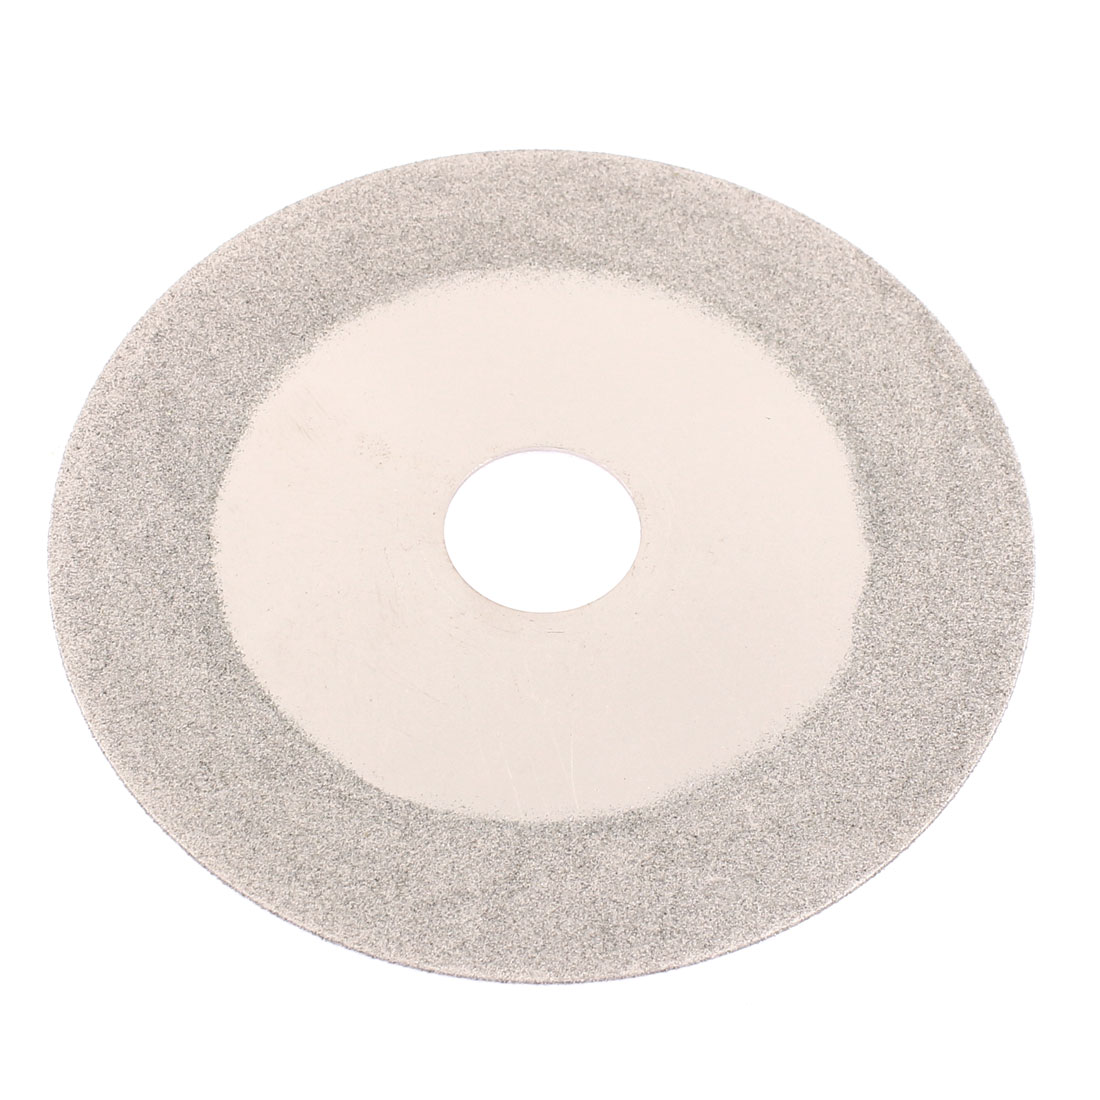 100mm 4 Inch Diamond Coated Cut Off Disc Wheel Grinding Gasket Tool